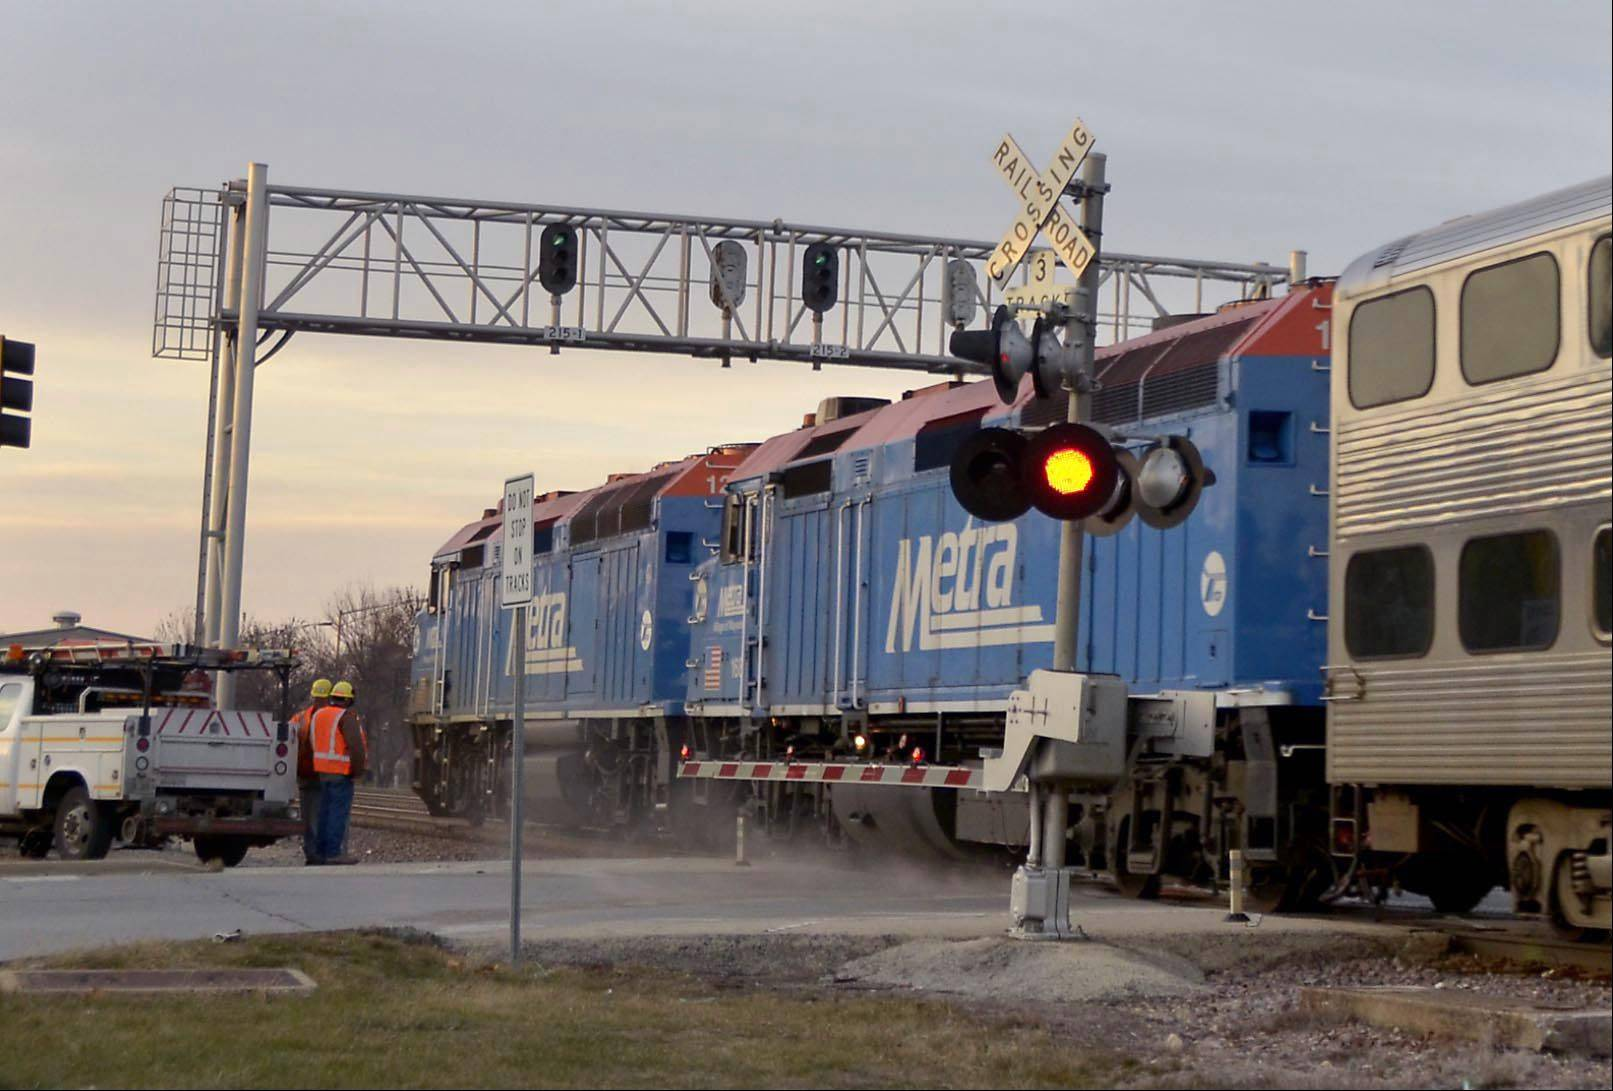 Bill Zars/bzars@dailyherald.com America's major freight railroads expect to hire 11,000 people and invest $13 billion in their rail networks and equipment this year.